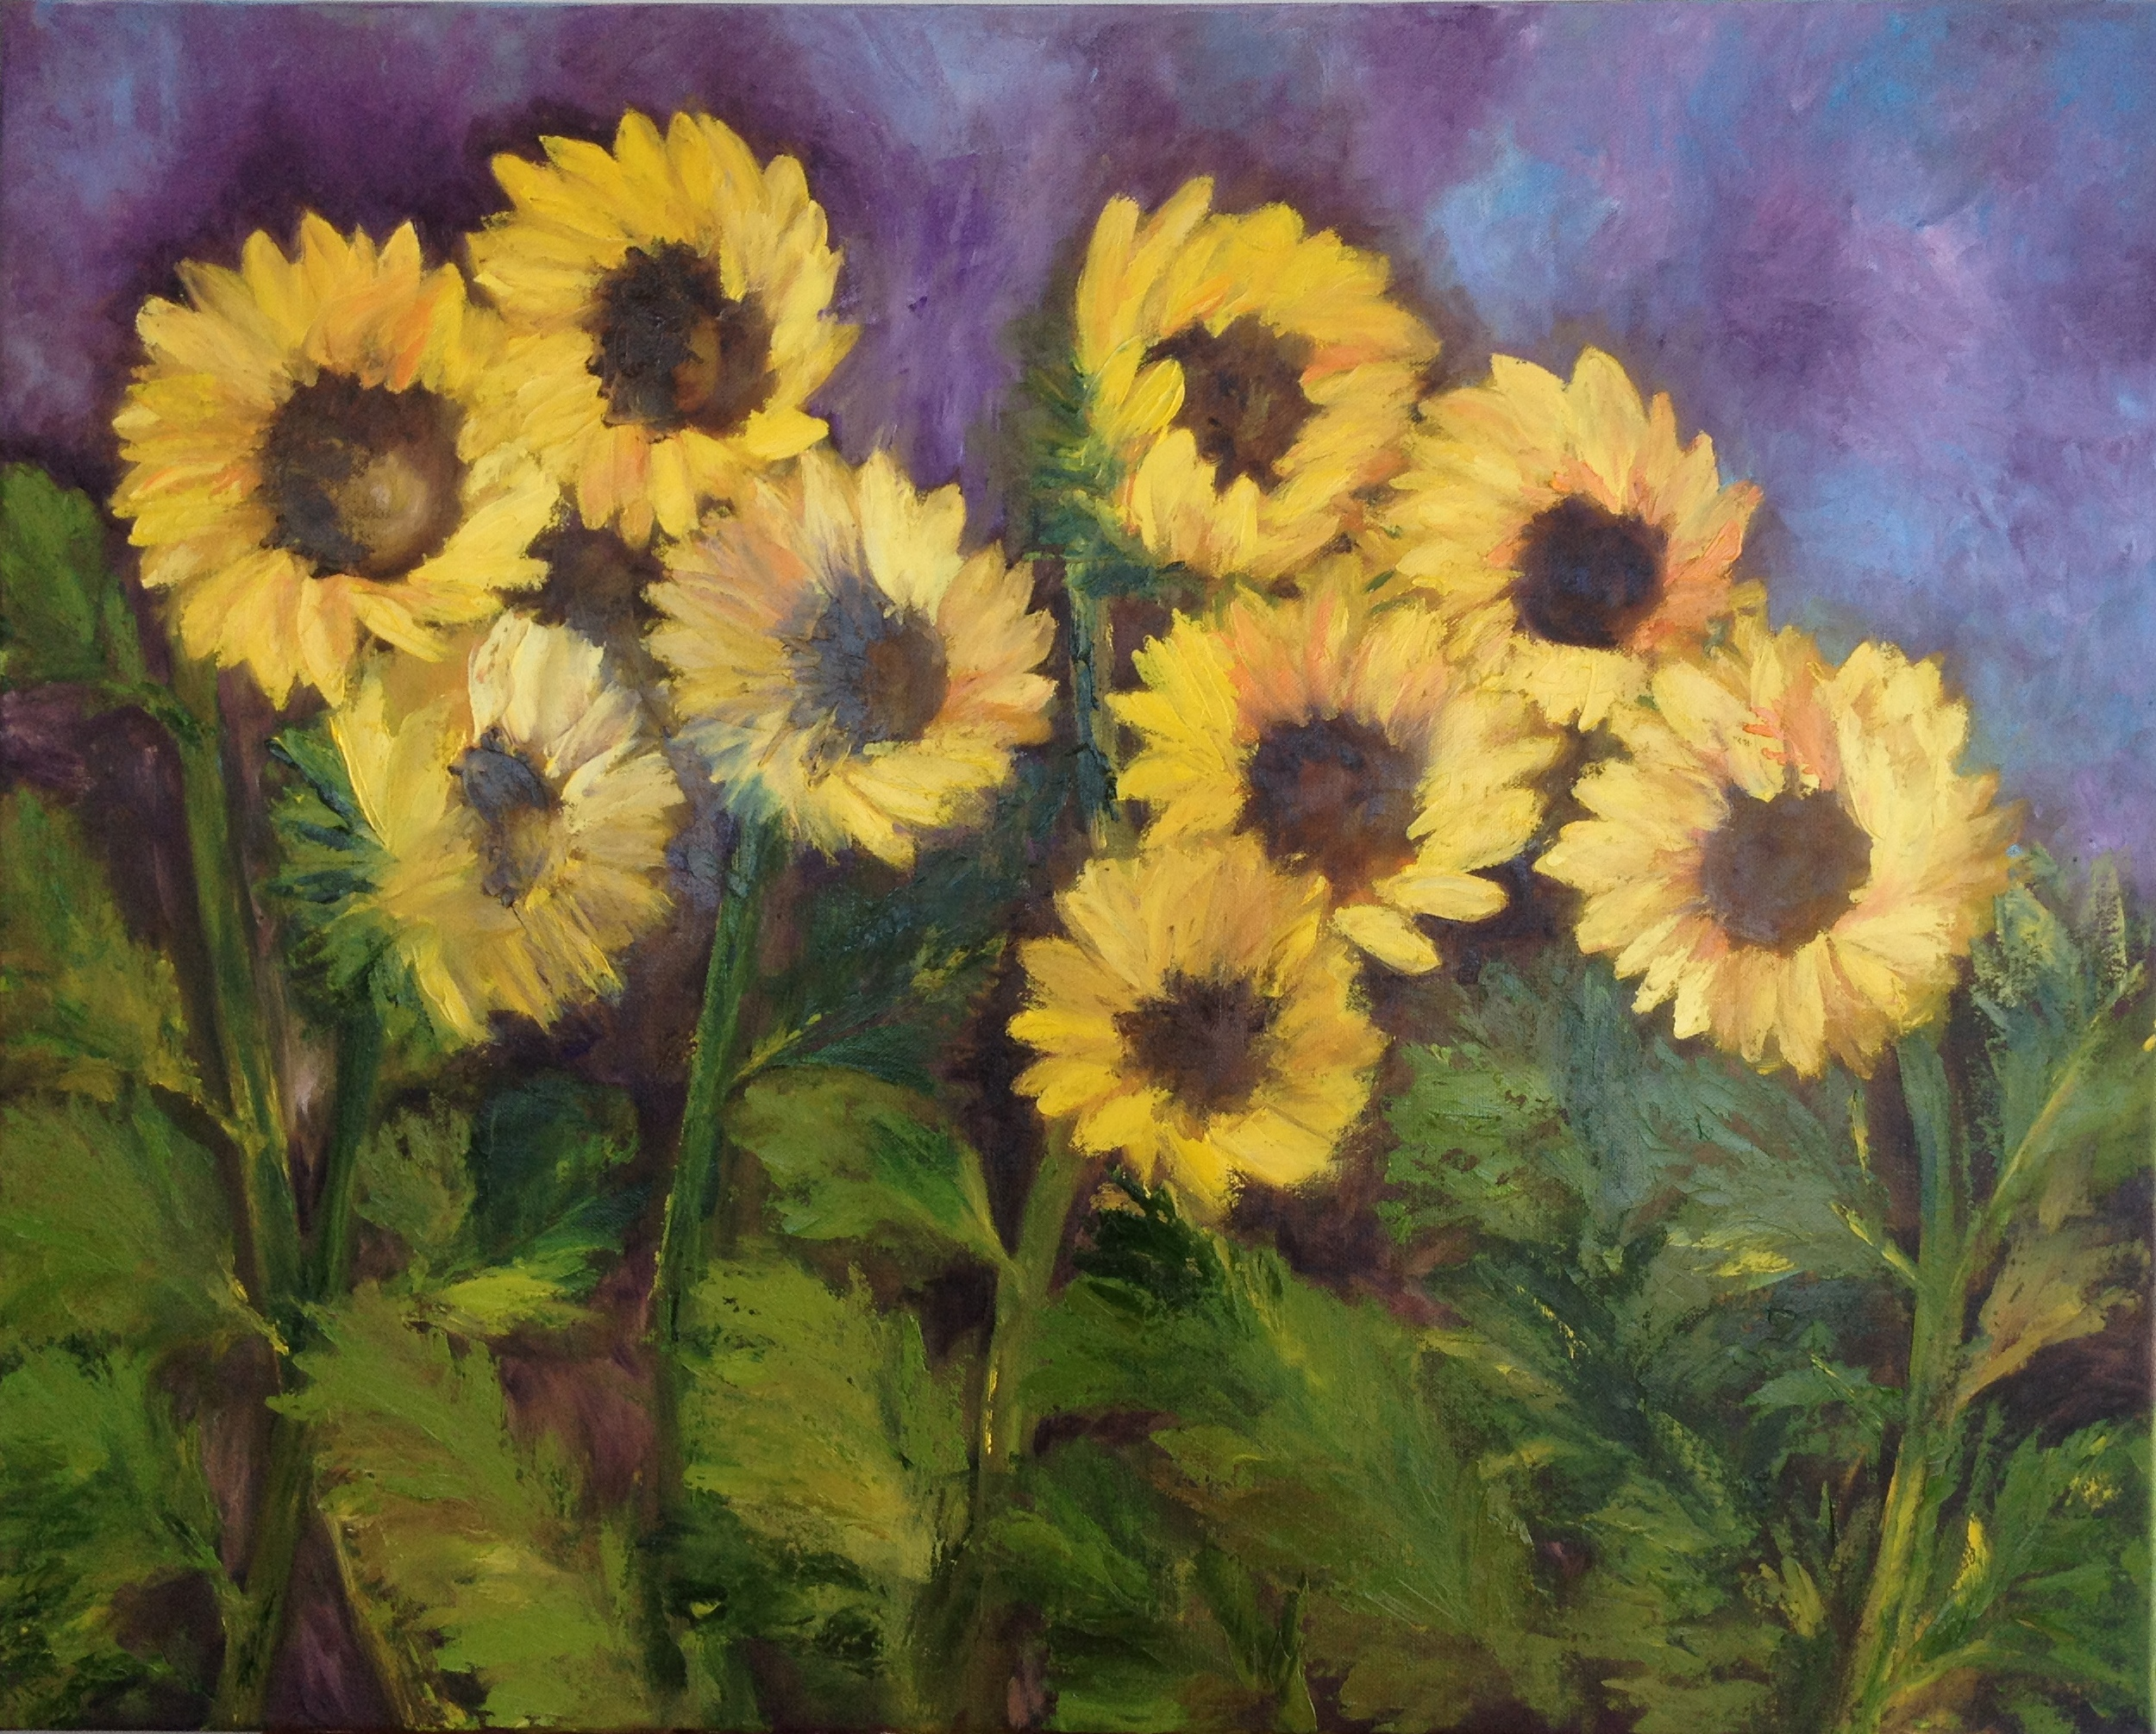 Sunflowers by the Roadside